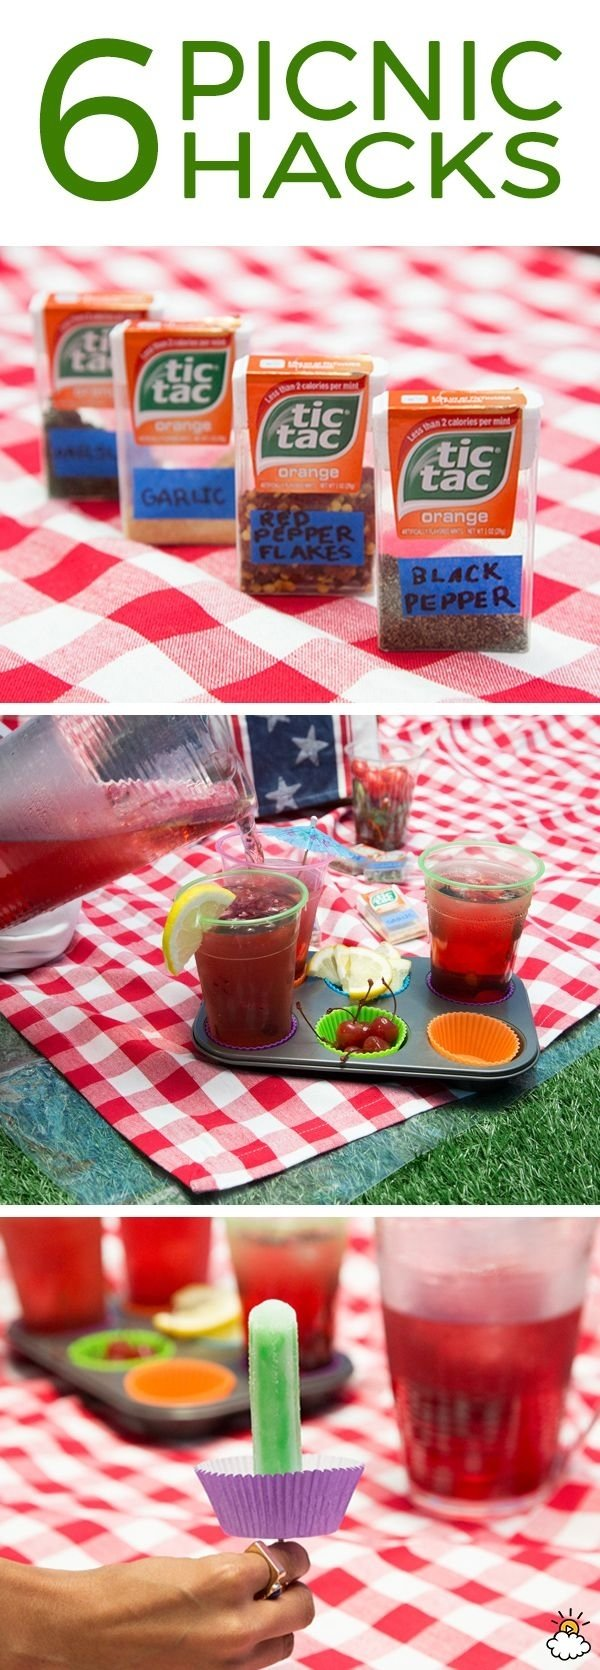 10 Spectacular Romantic Picnic Ideas For Her 30 best picnic ideas images on pinterest picnic ideas discount